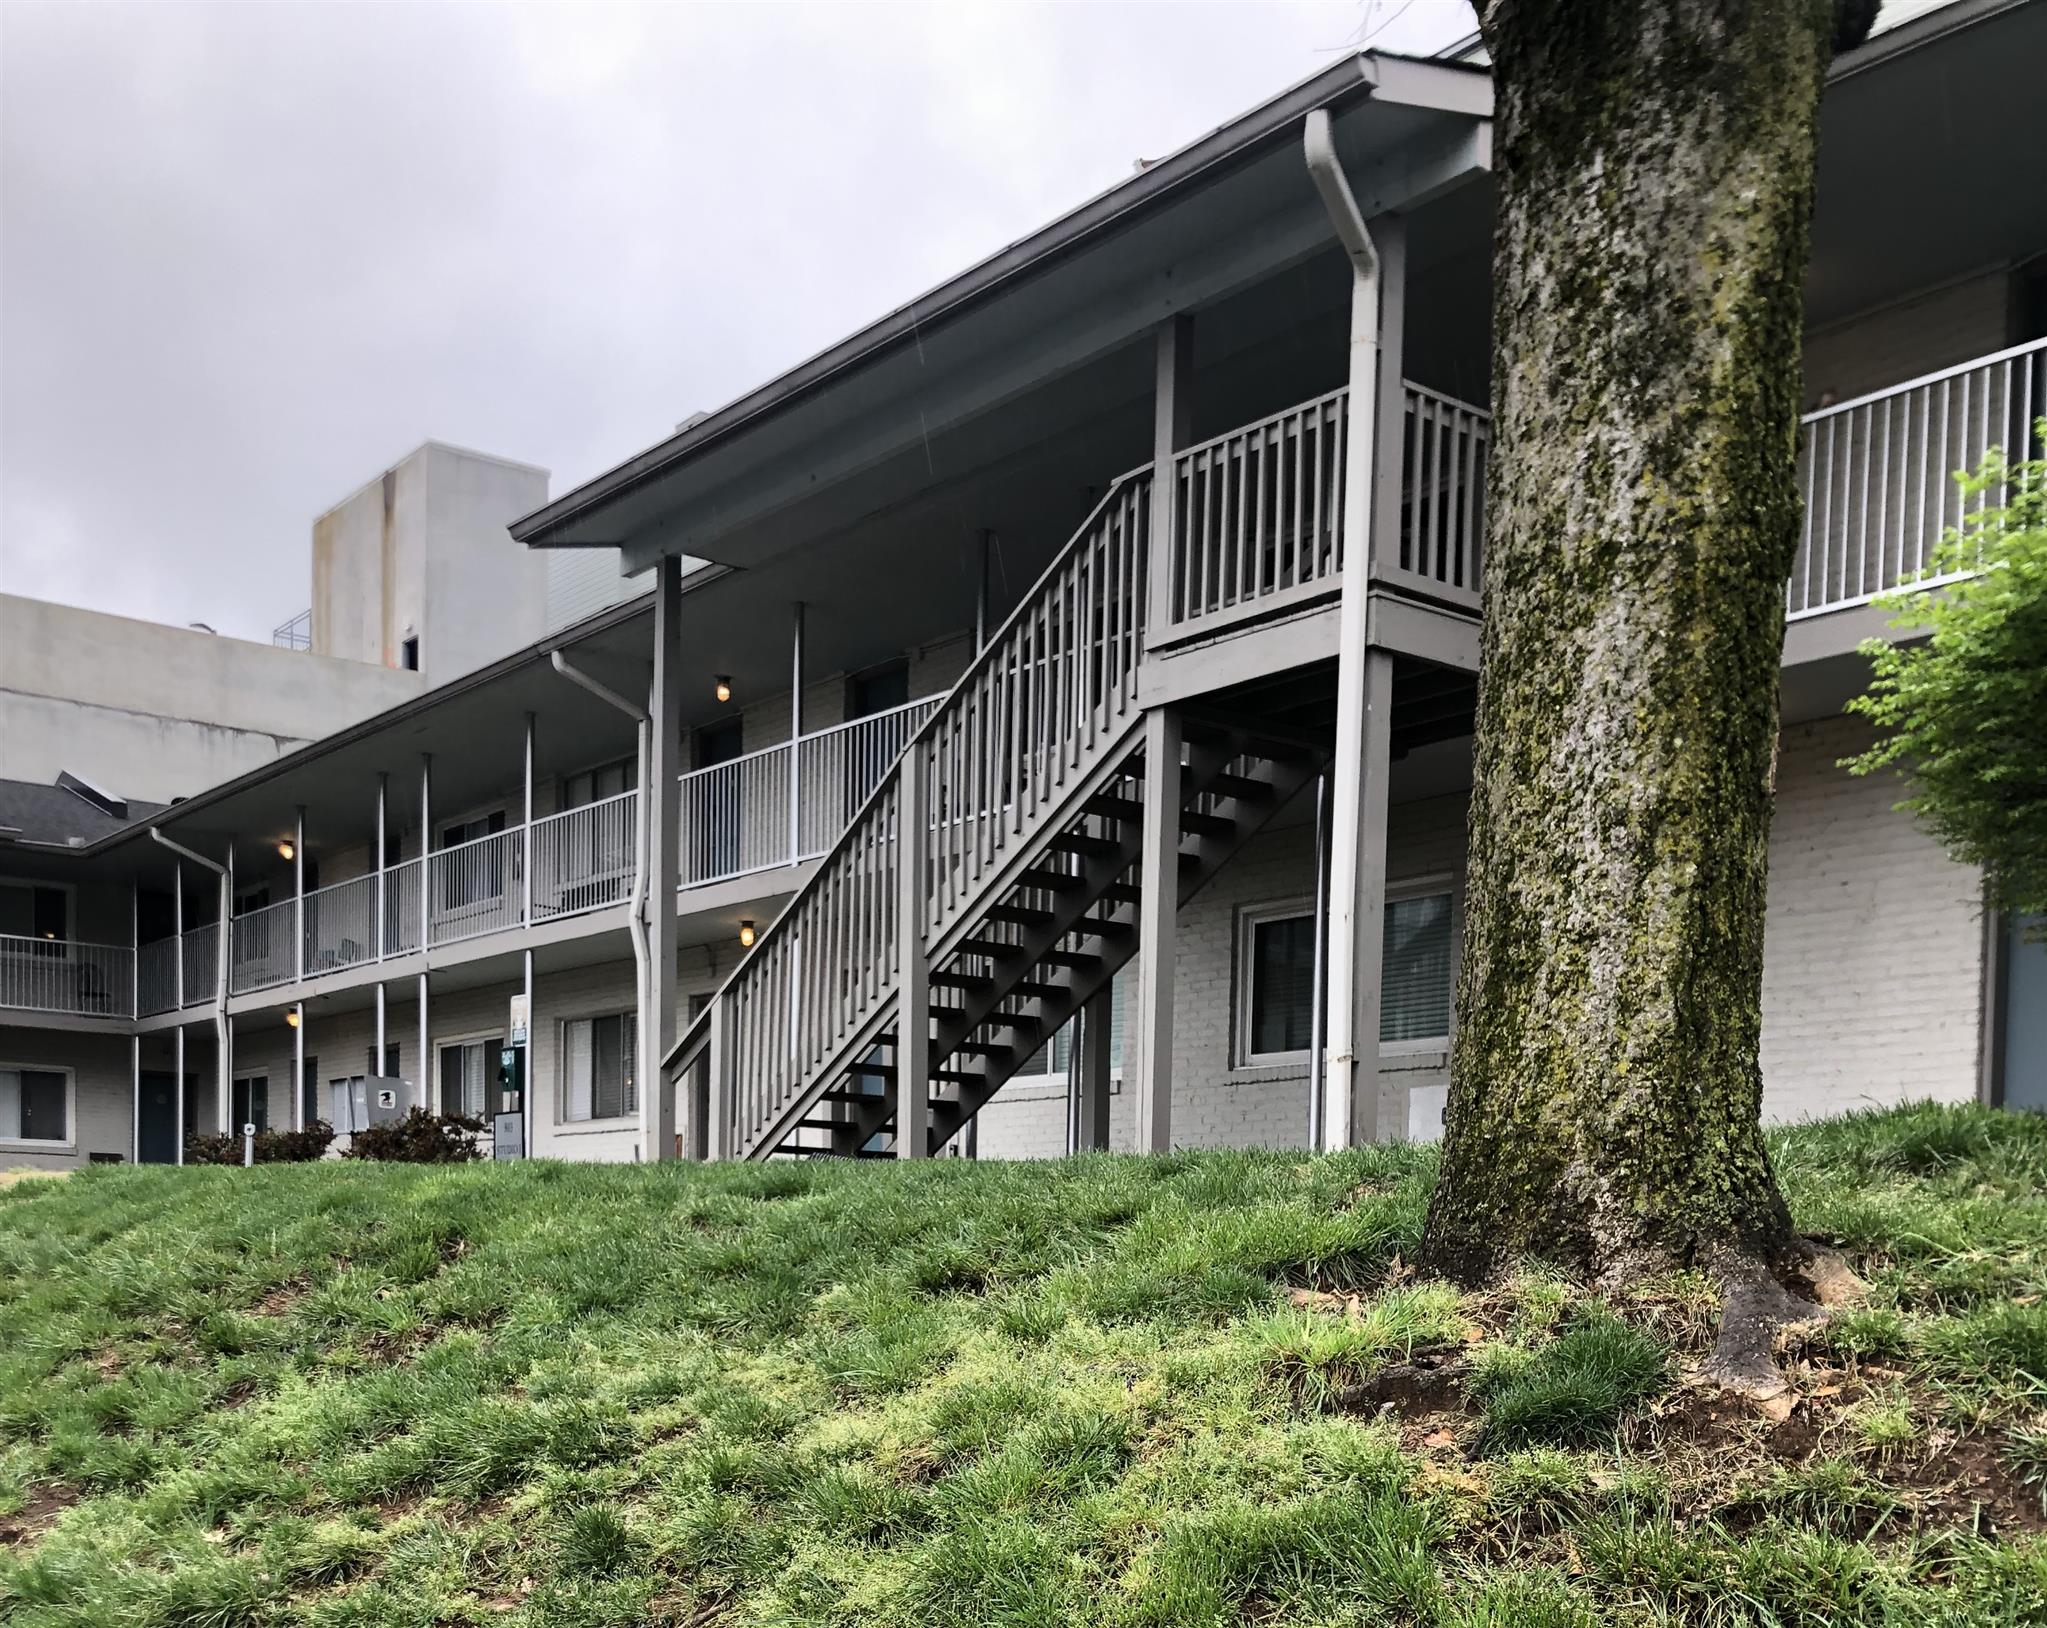 803 Hillwood Hts Apt 206, Nashville, TN   PURCHASED PRICE $192,000  1 BED · 1 BATH · 418 SQF